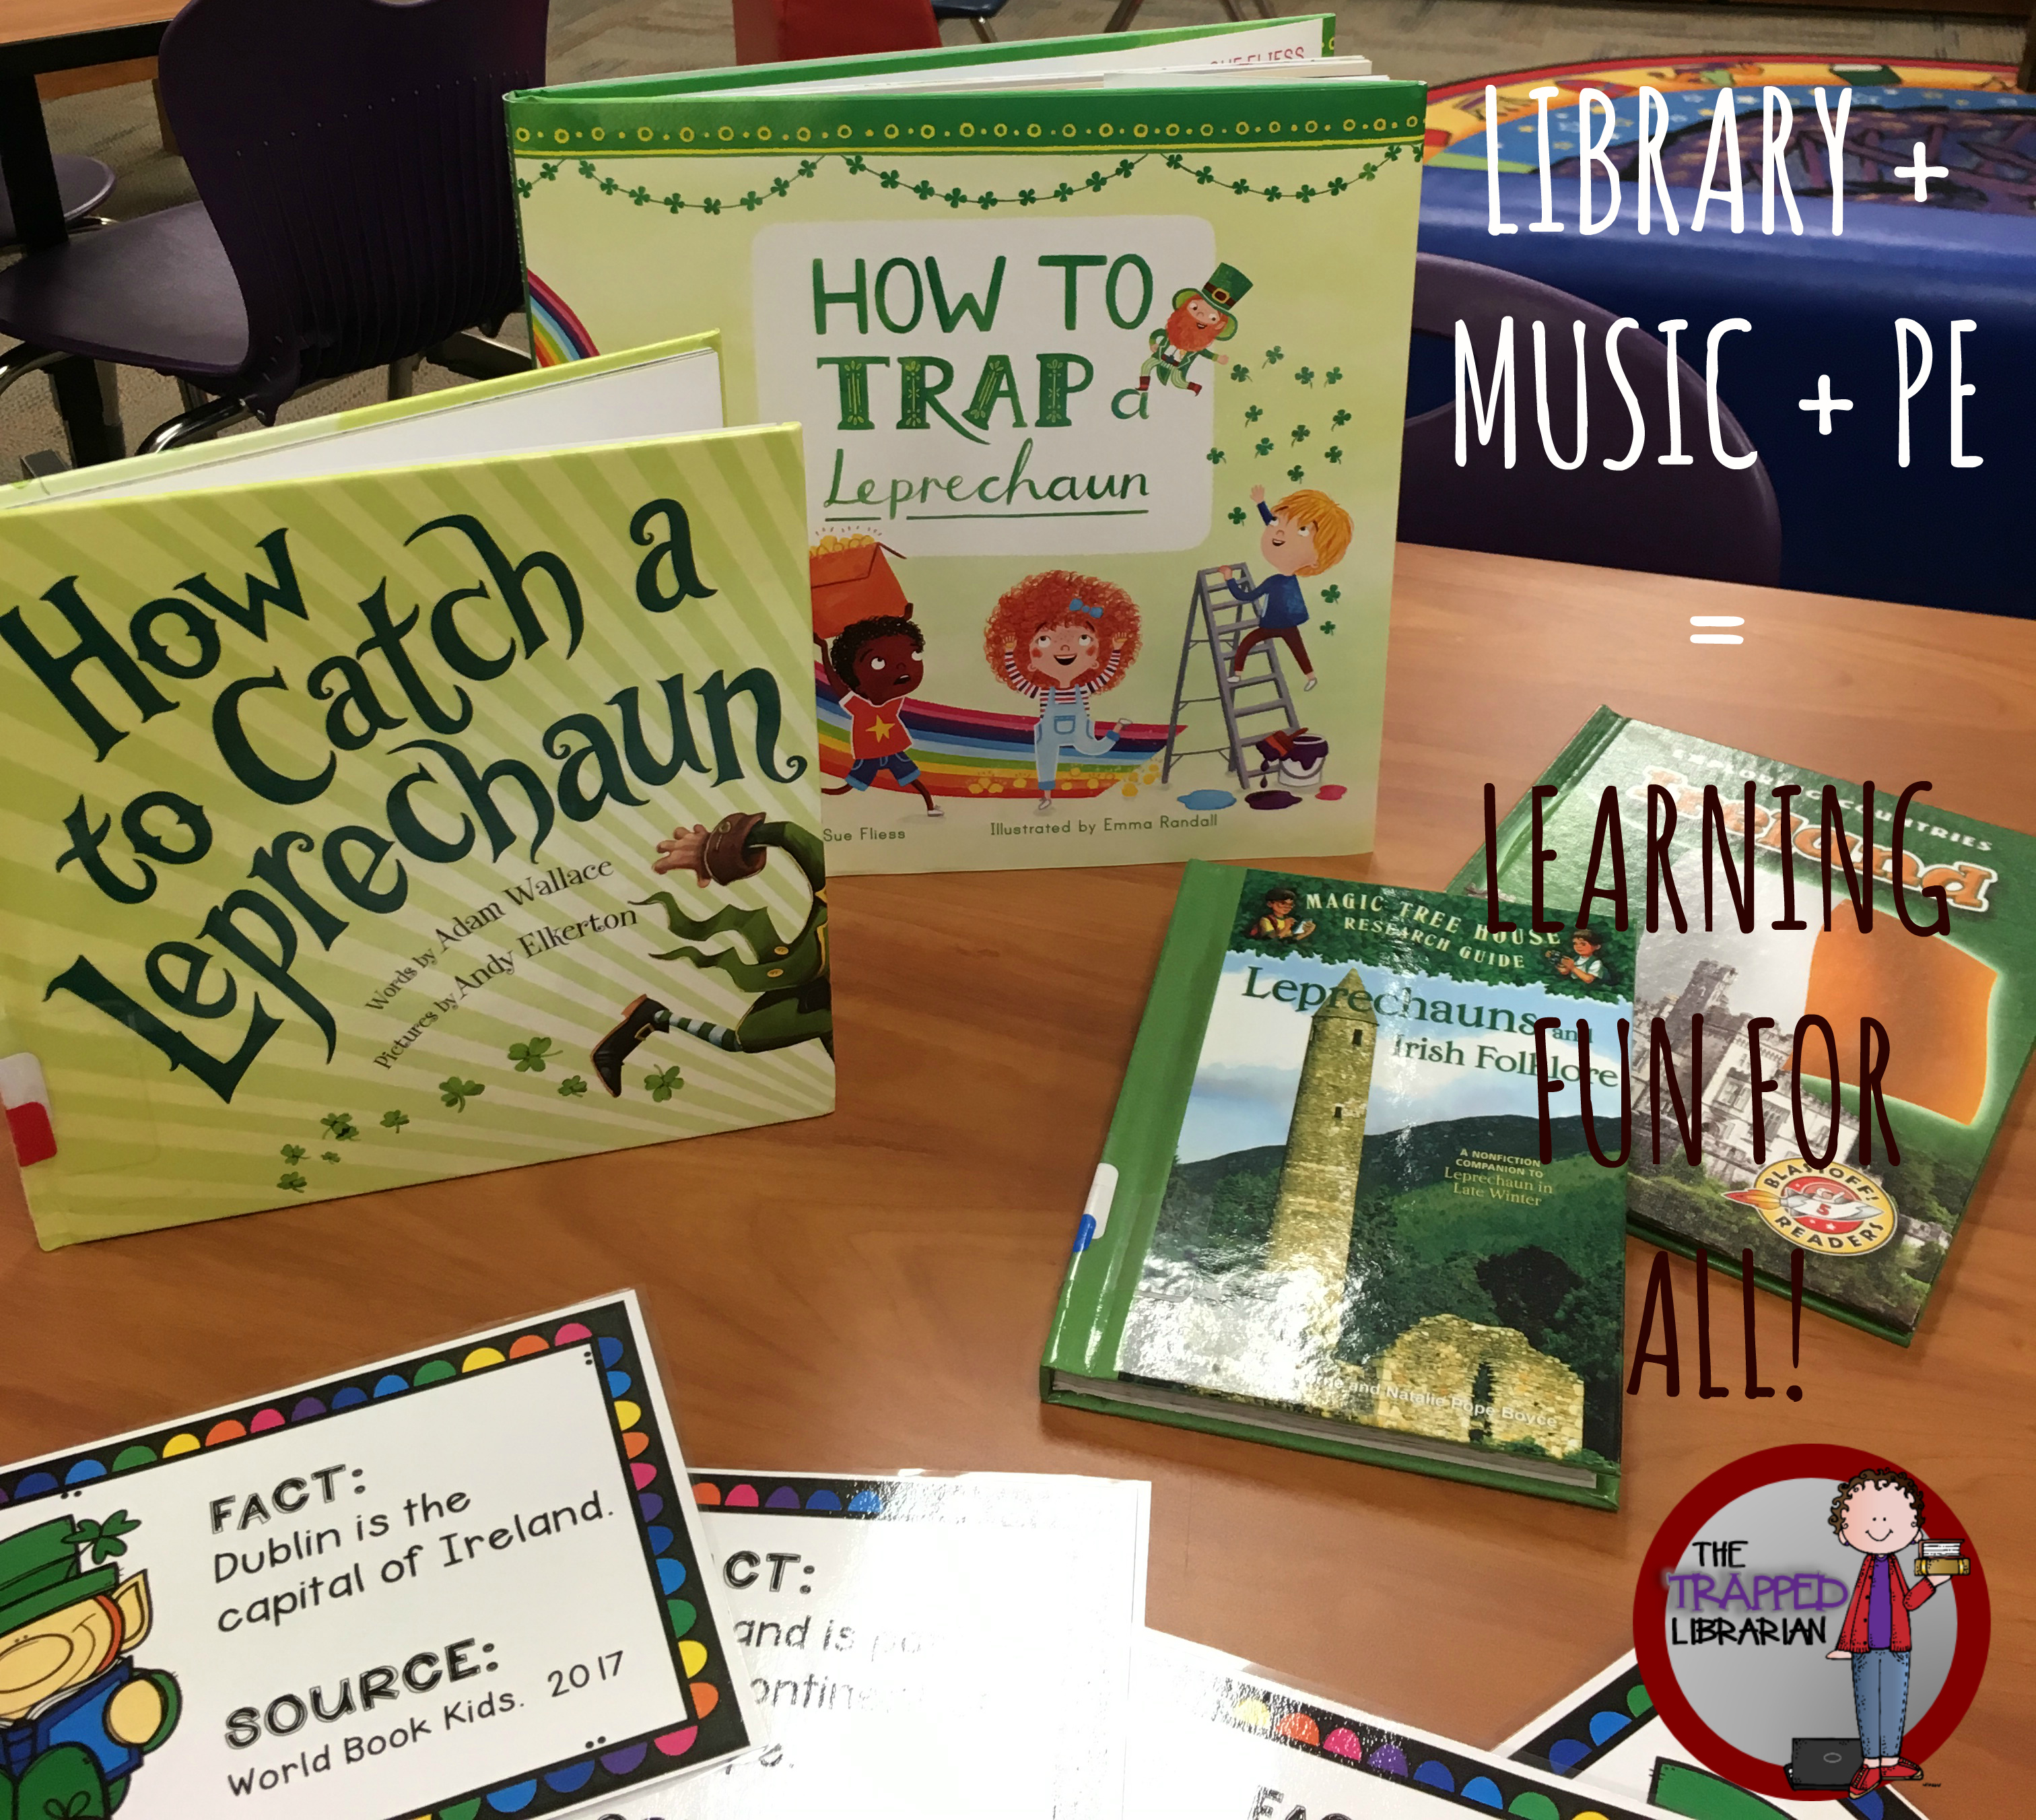 Library + Music + Physical Education = A Winning Team!